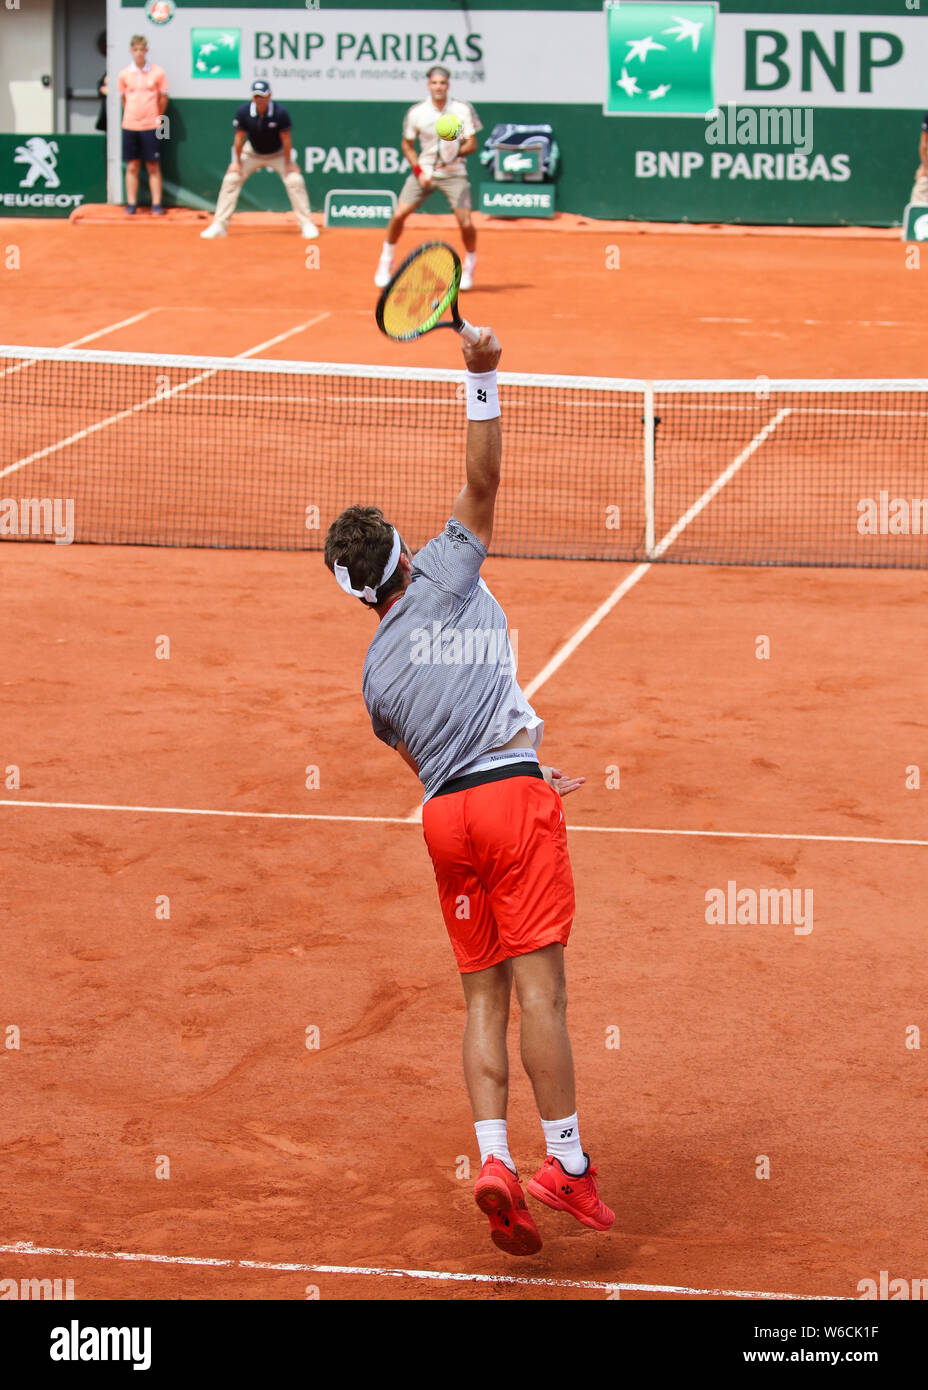 Norwegian Tennis Player Casper Ruud Playing A Service Shot To Roger Federer At The French Open 2019 Paris France Stock Photo Alamy